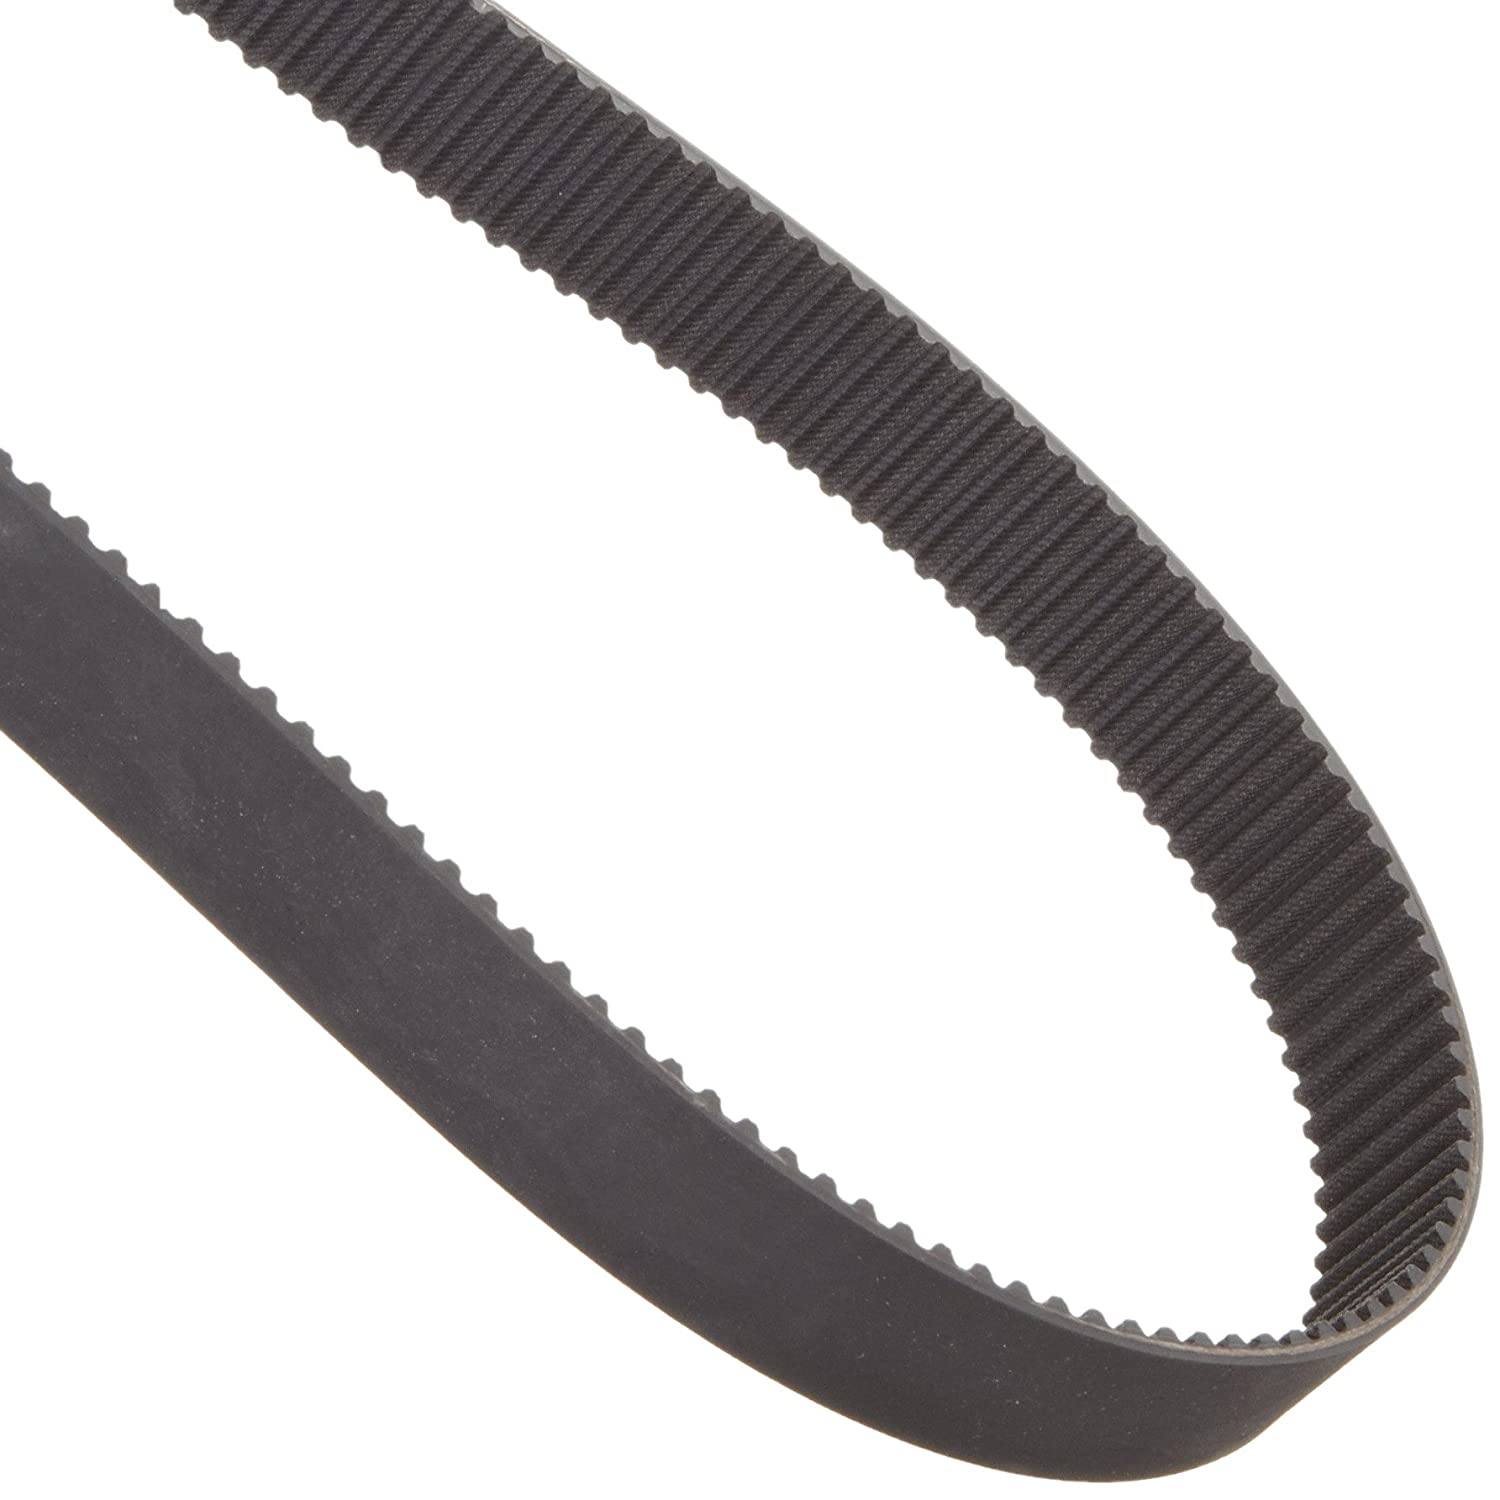 3.6 mm Height 600mm Pitch Length 15mm Wide 5mm Pitch Continental ContiTech 600 5M 15 Hawk Positive Drive Synchronous Belt